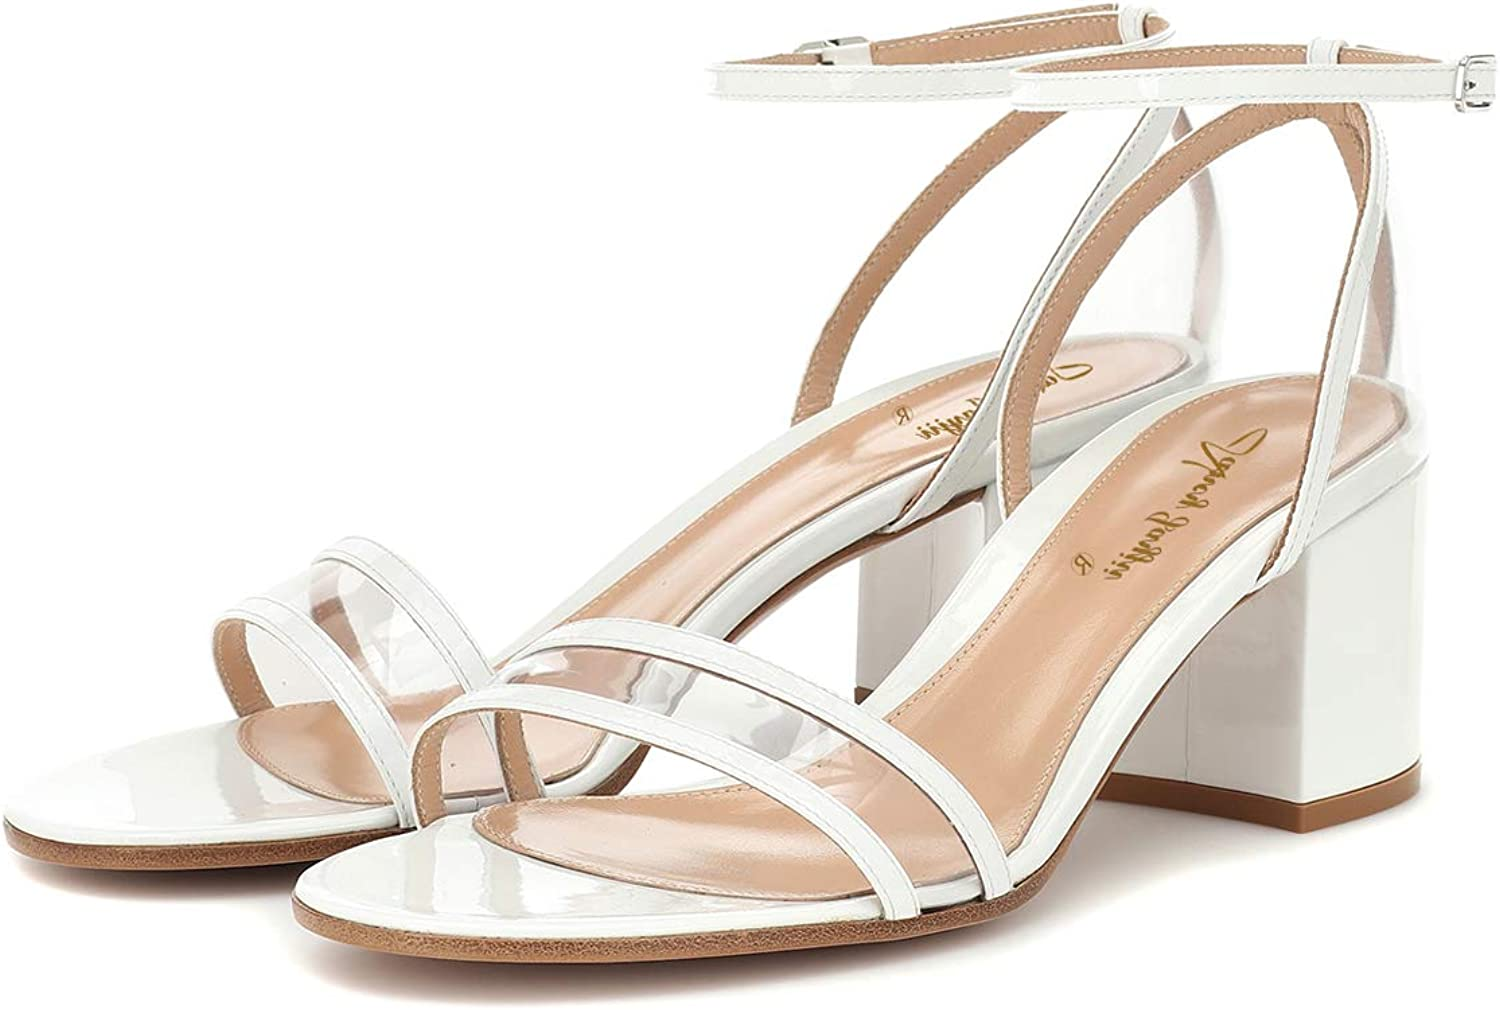 NJ Women Ankle Strap Slingback Low Heel Sandals Open Toe Strappy Transparent Clear PVC Daily Office Dress Pumps